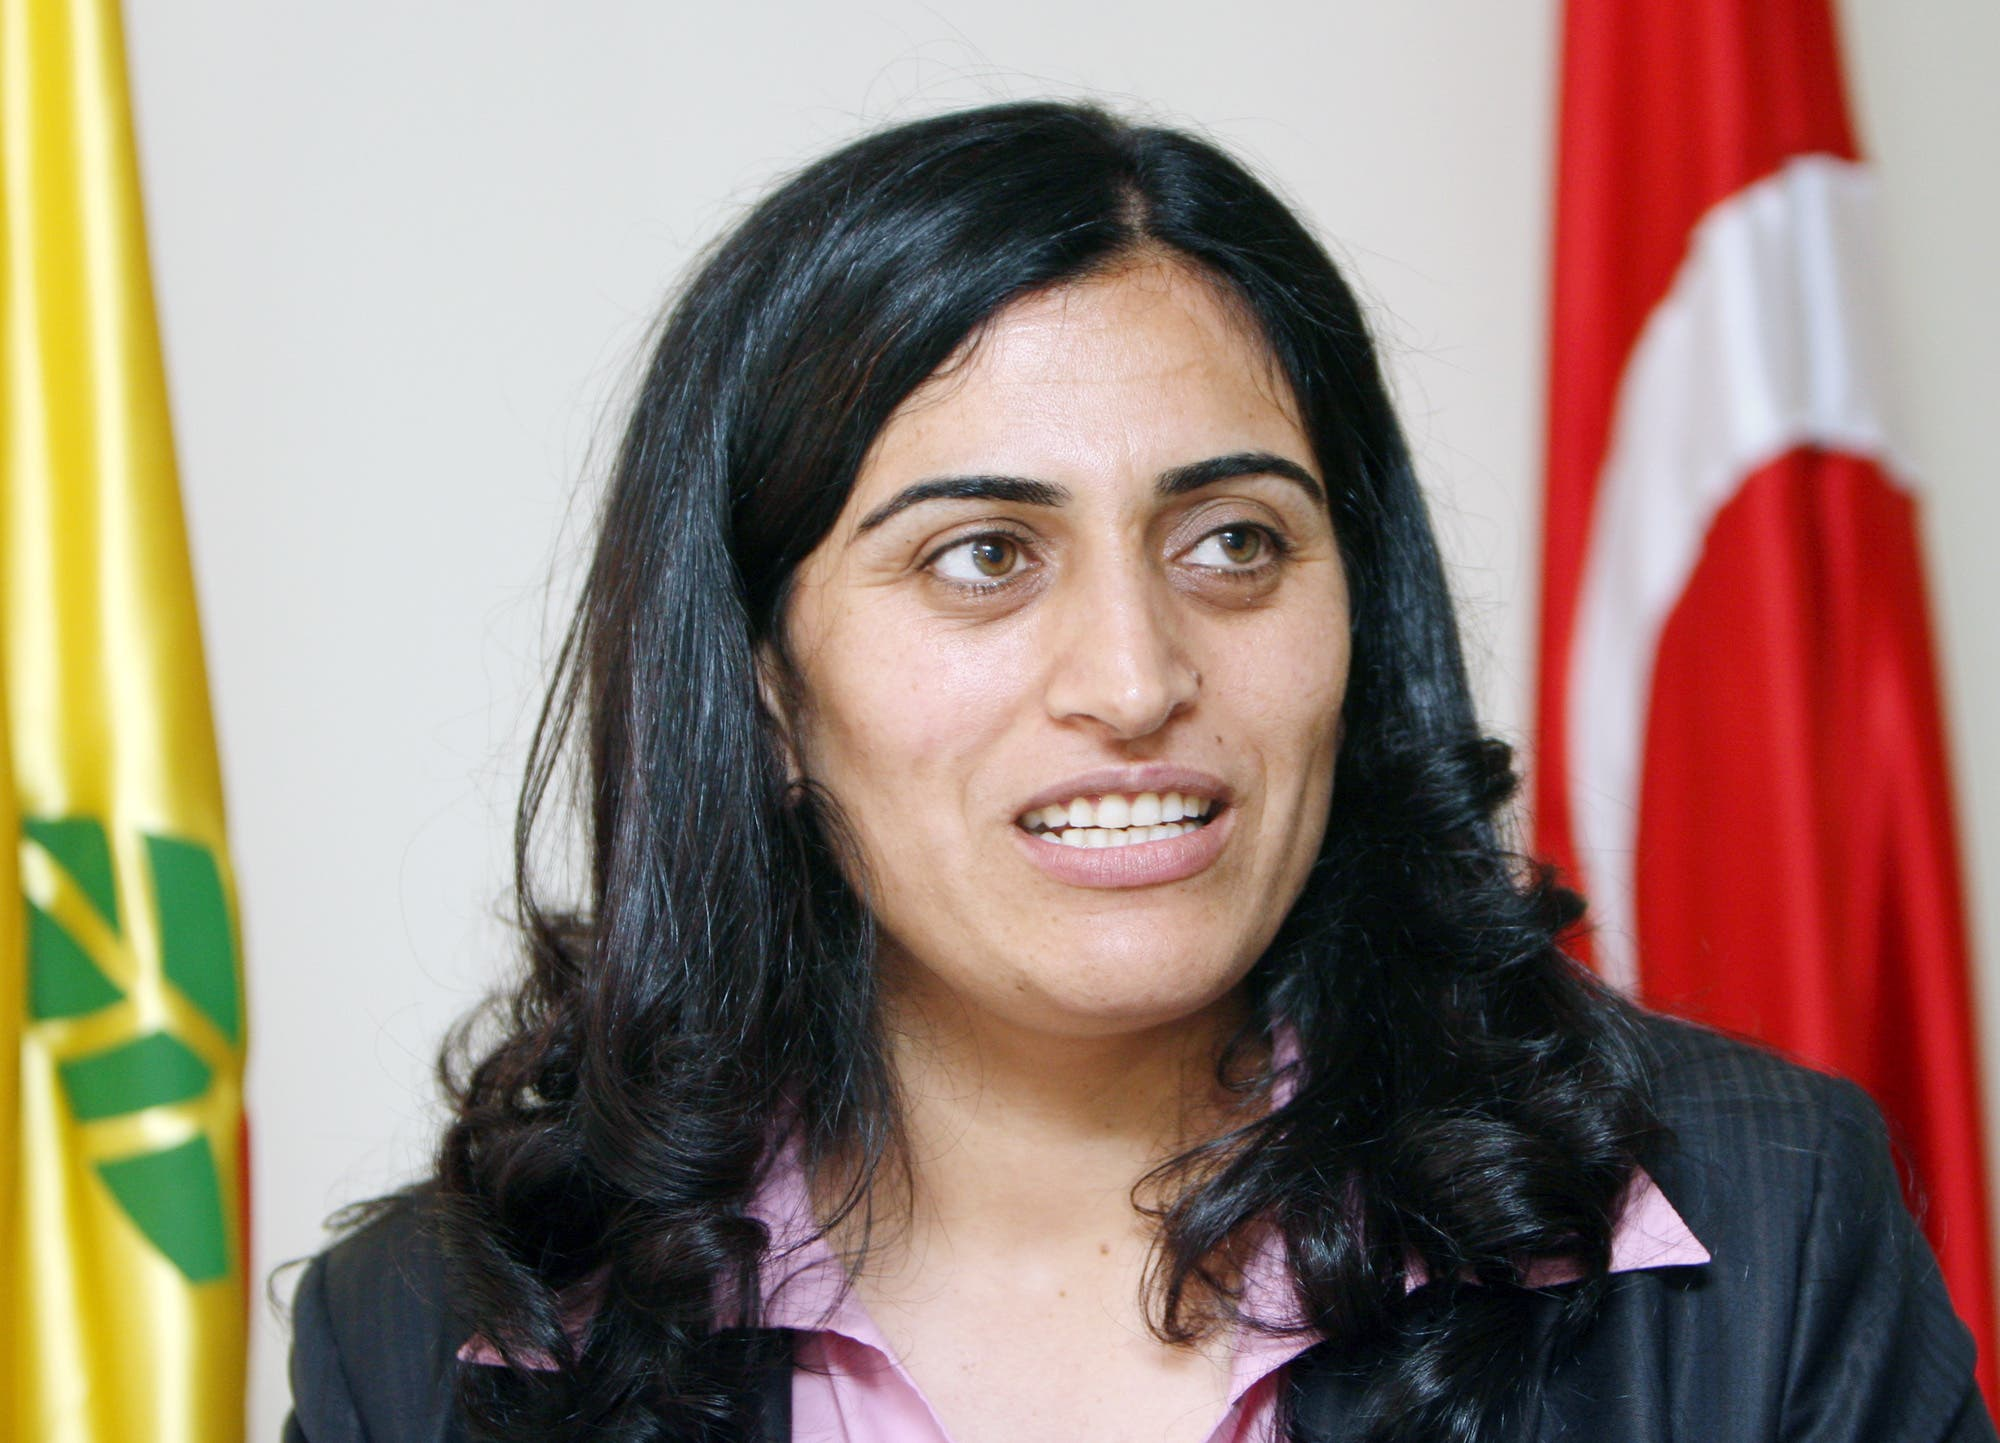 Sebahat Tuncel, after being elected, speaks to the Associated Press in Ankara, Thursday, Aug. 2, 2007. (File photo: AP)